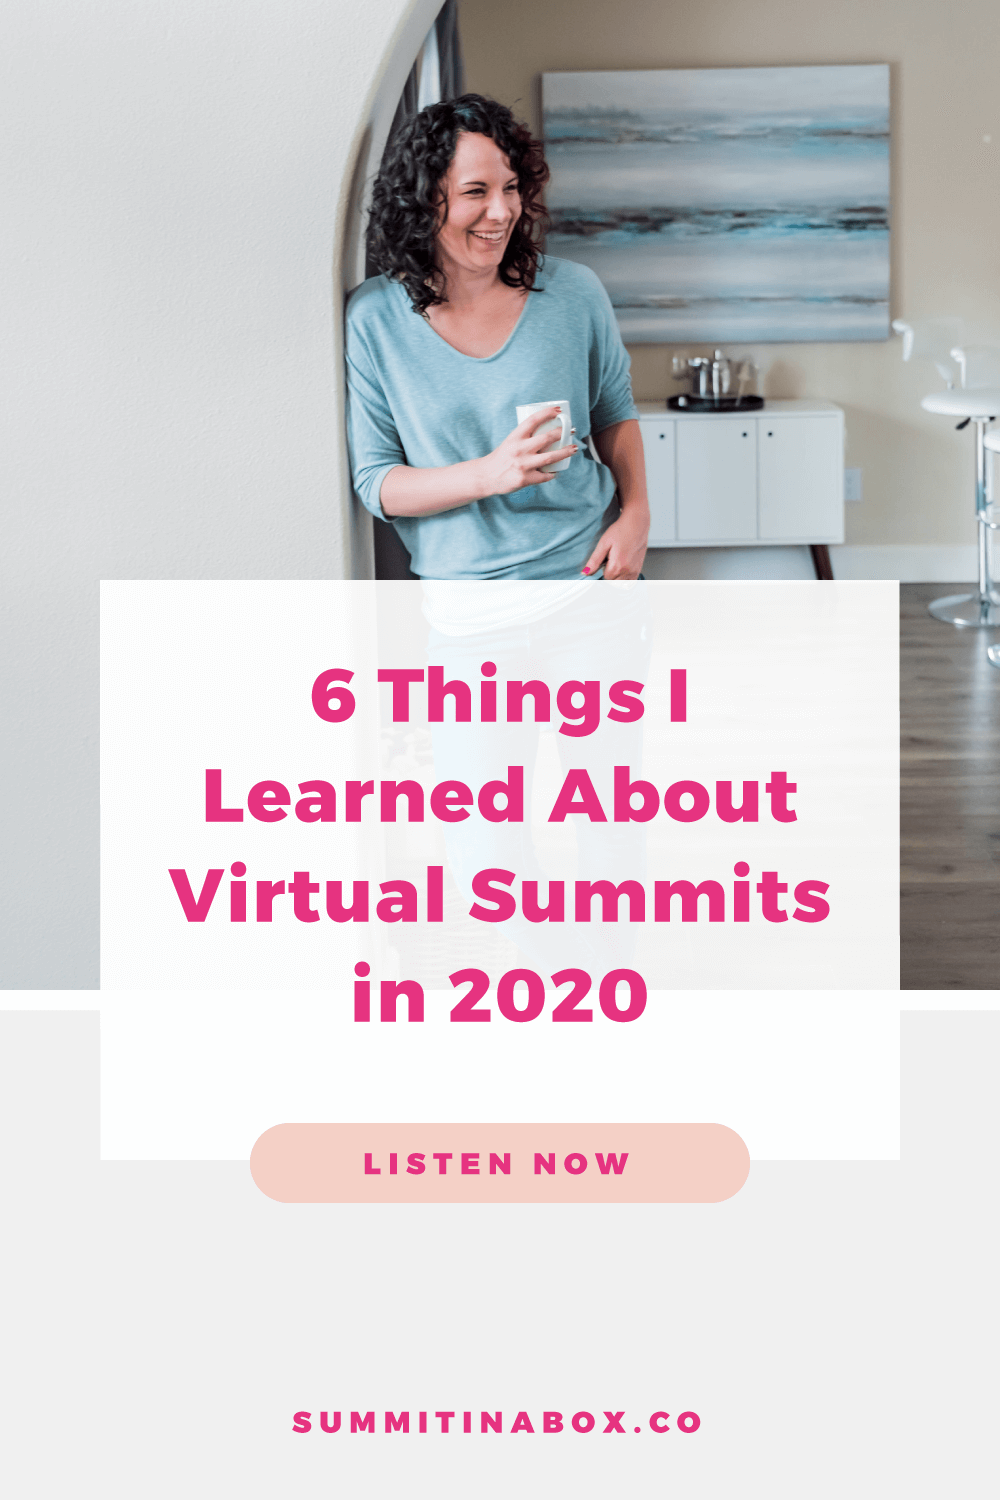 Virtual summits are always changing and evolving so today we'll cover 6 things I learned about virtual summits in 2020.